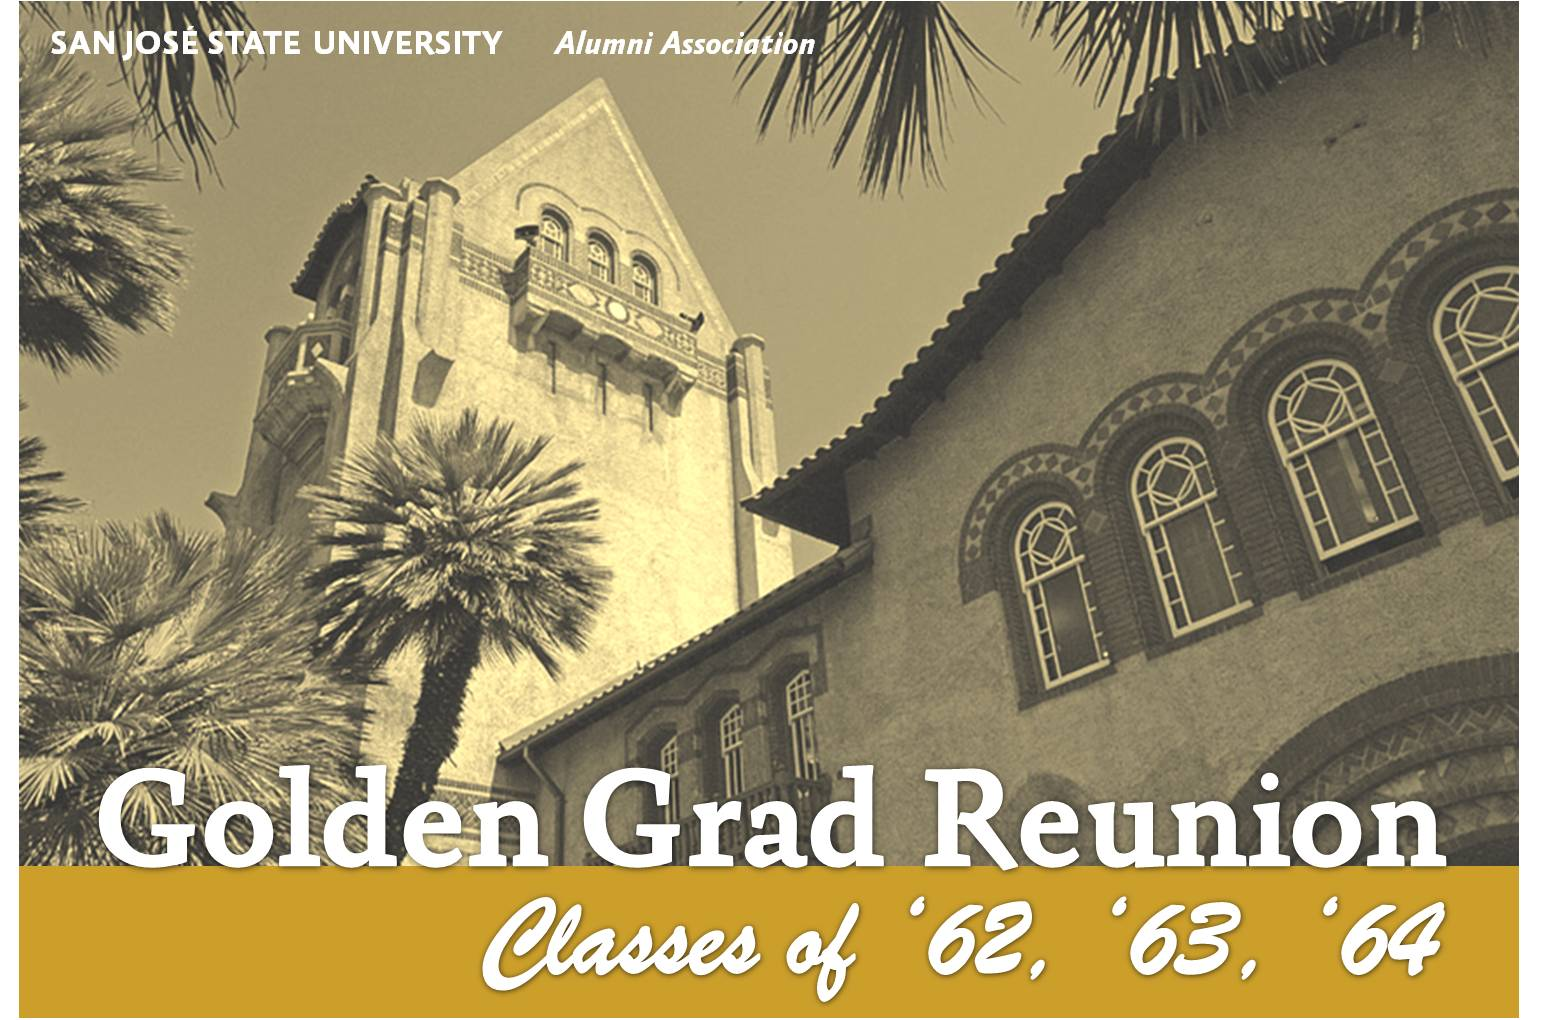 SJSU Golden Grad Reunion: Classes of '62, '63, '64